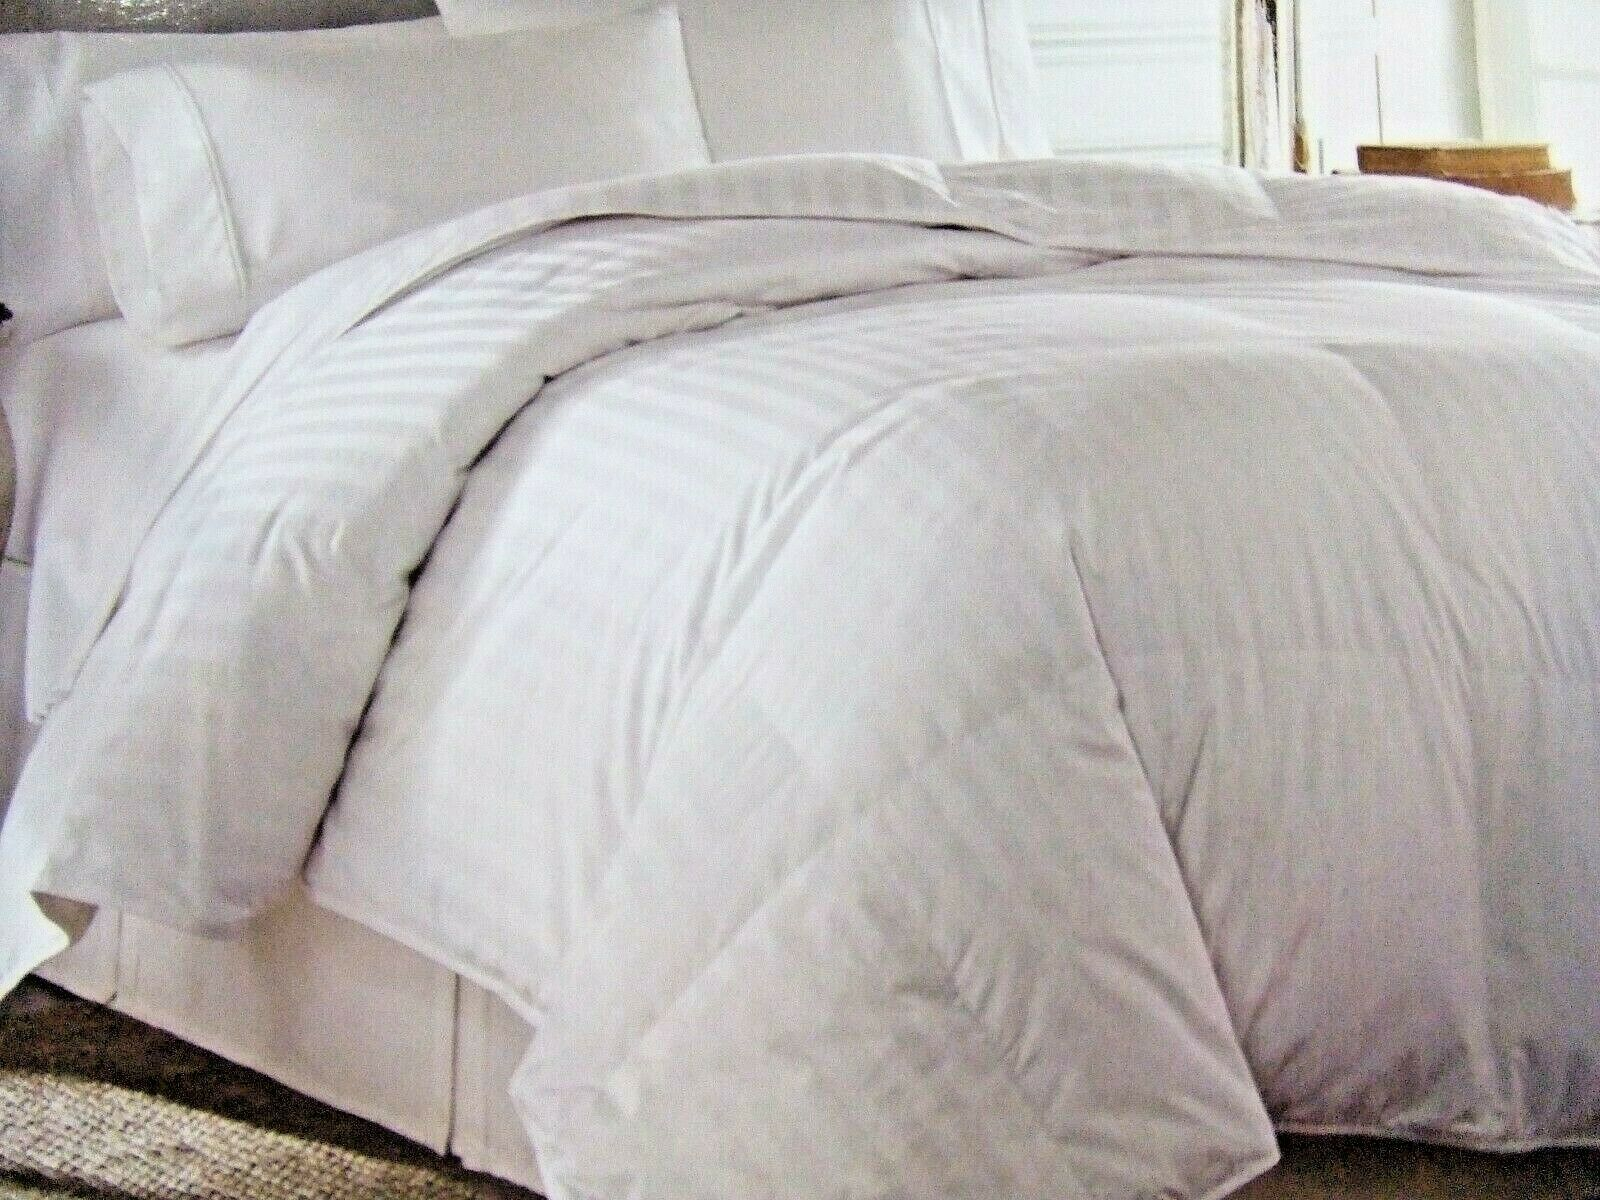 King Comforter European Goose Down 650 Fill Power Usa By Downlite 500 Tc For Sale Online